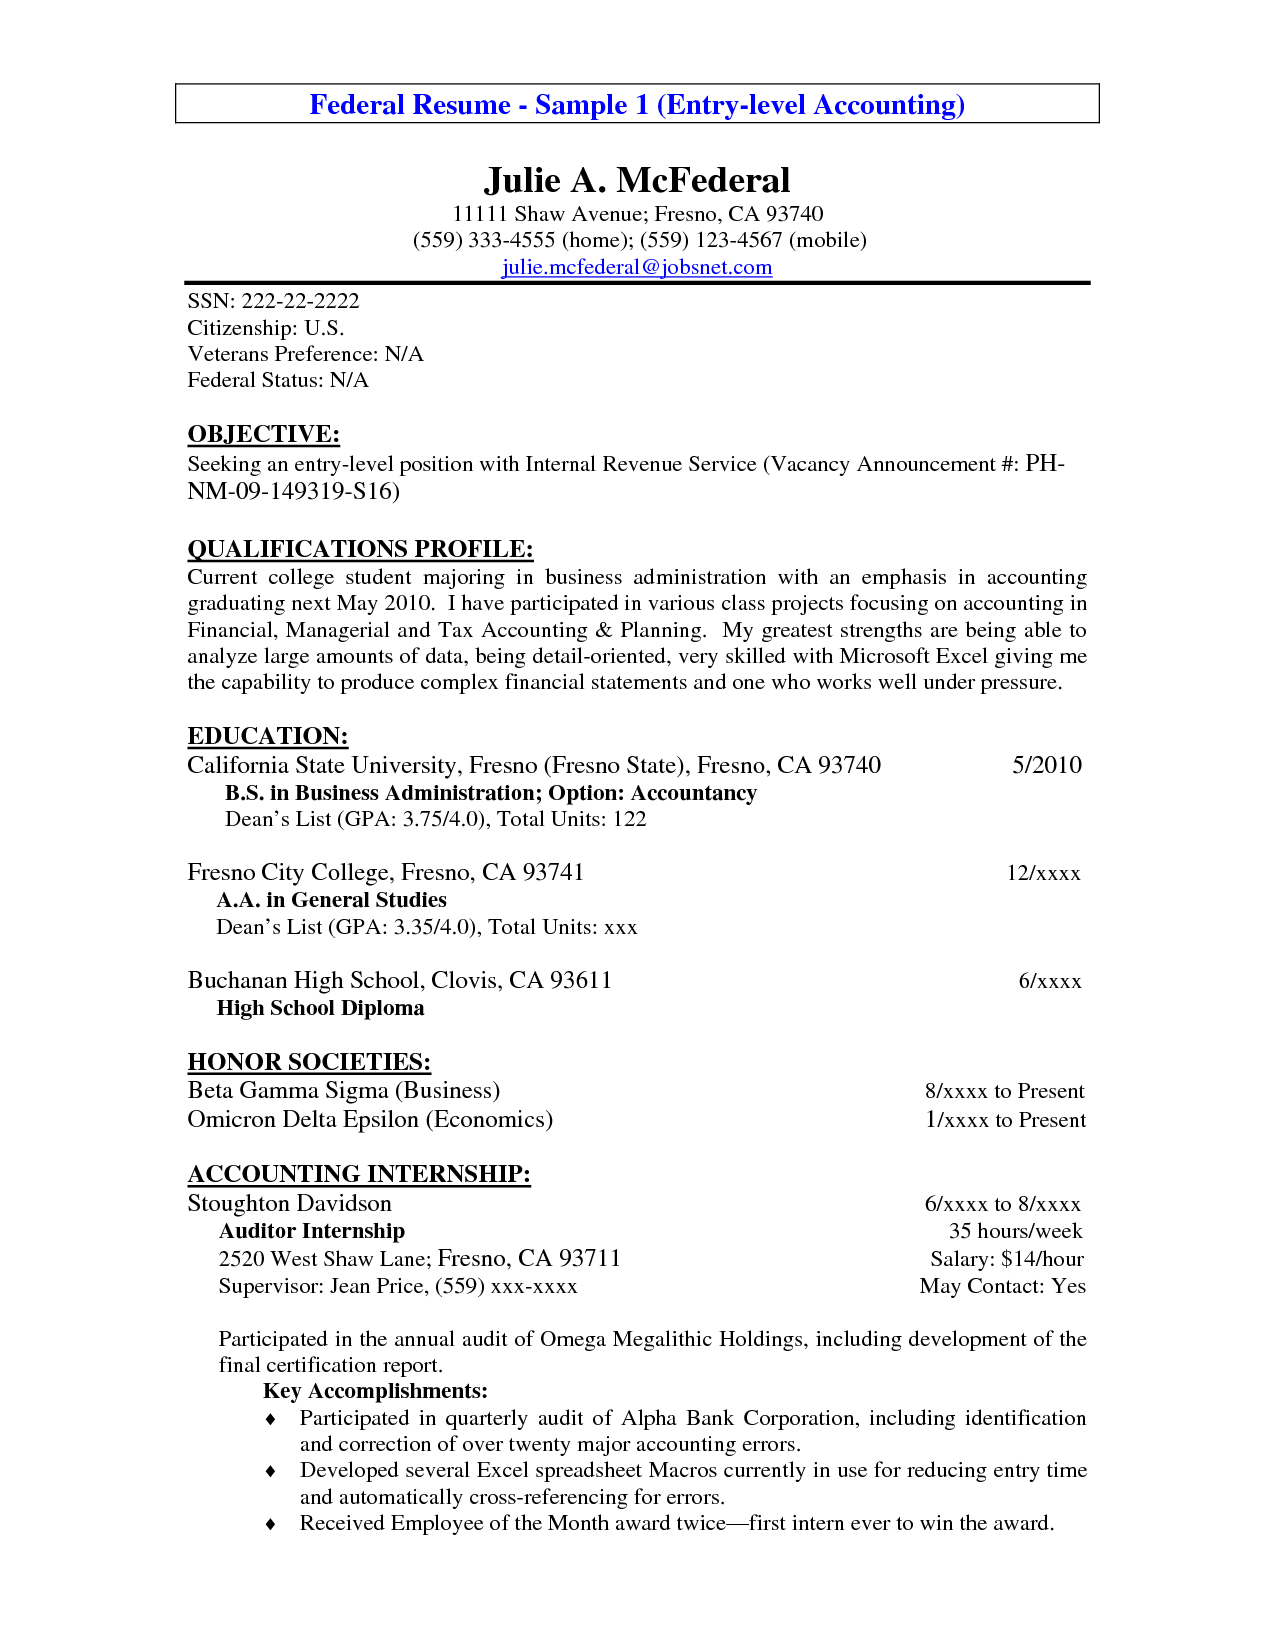 Accounting resume objectives read more httpwww accounting resume objectives read more httpsampleresumeobjectivesaccounting resume objectiveml altavistaventures Image collections